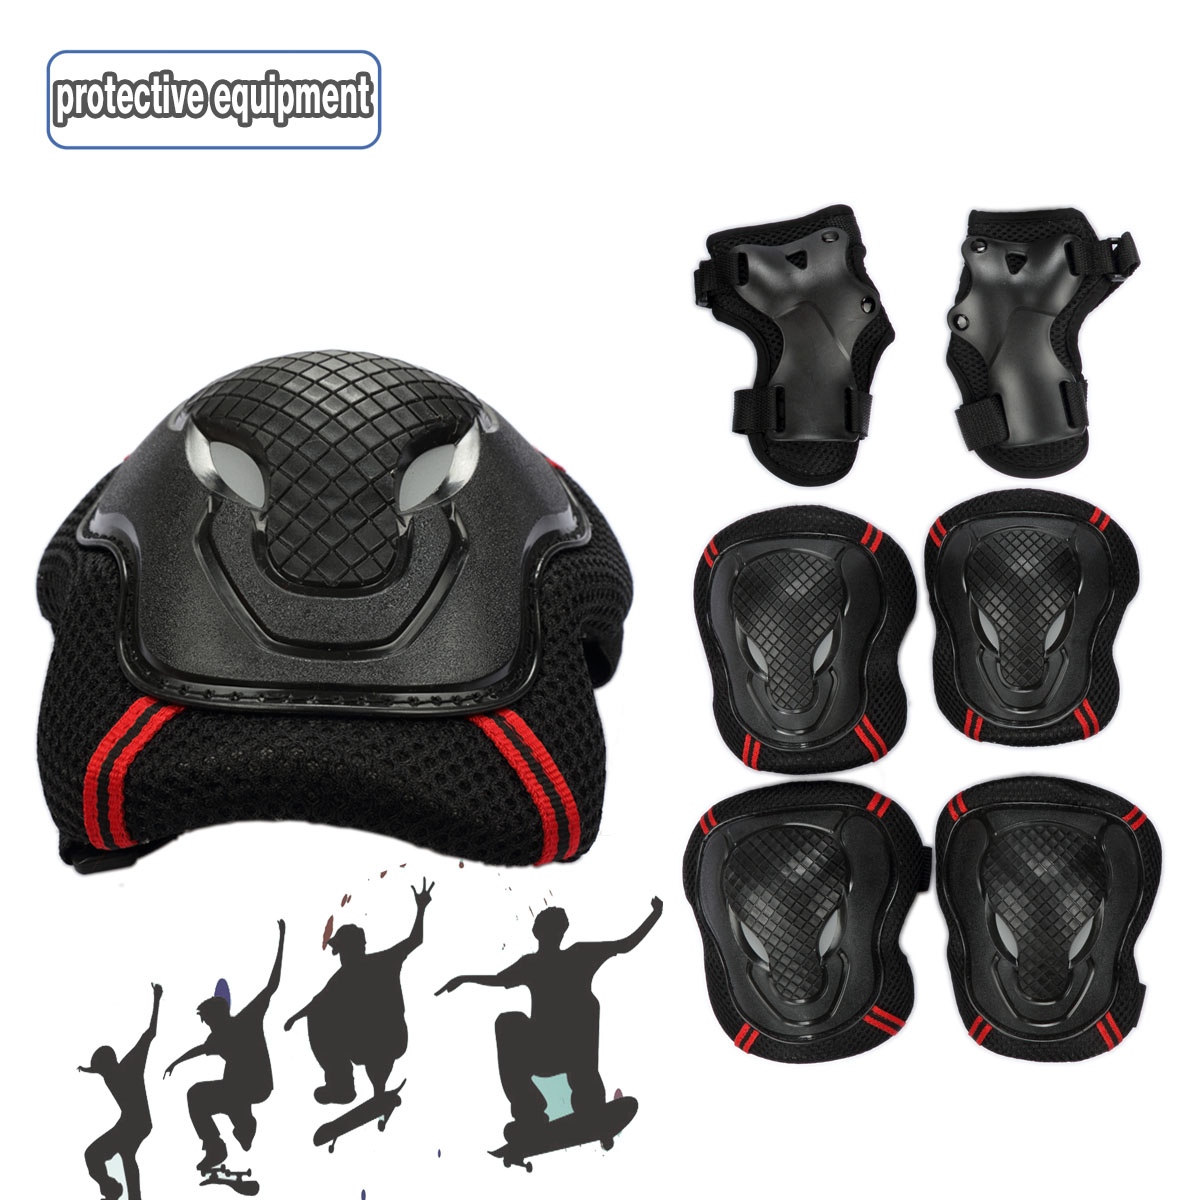 Bestmall 6Pcs Knee + Elbow Wrist Protective Pads Sets Protector Guard Pad Safety Gear for Roller Skating Skateboard... by Besmall